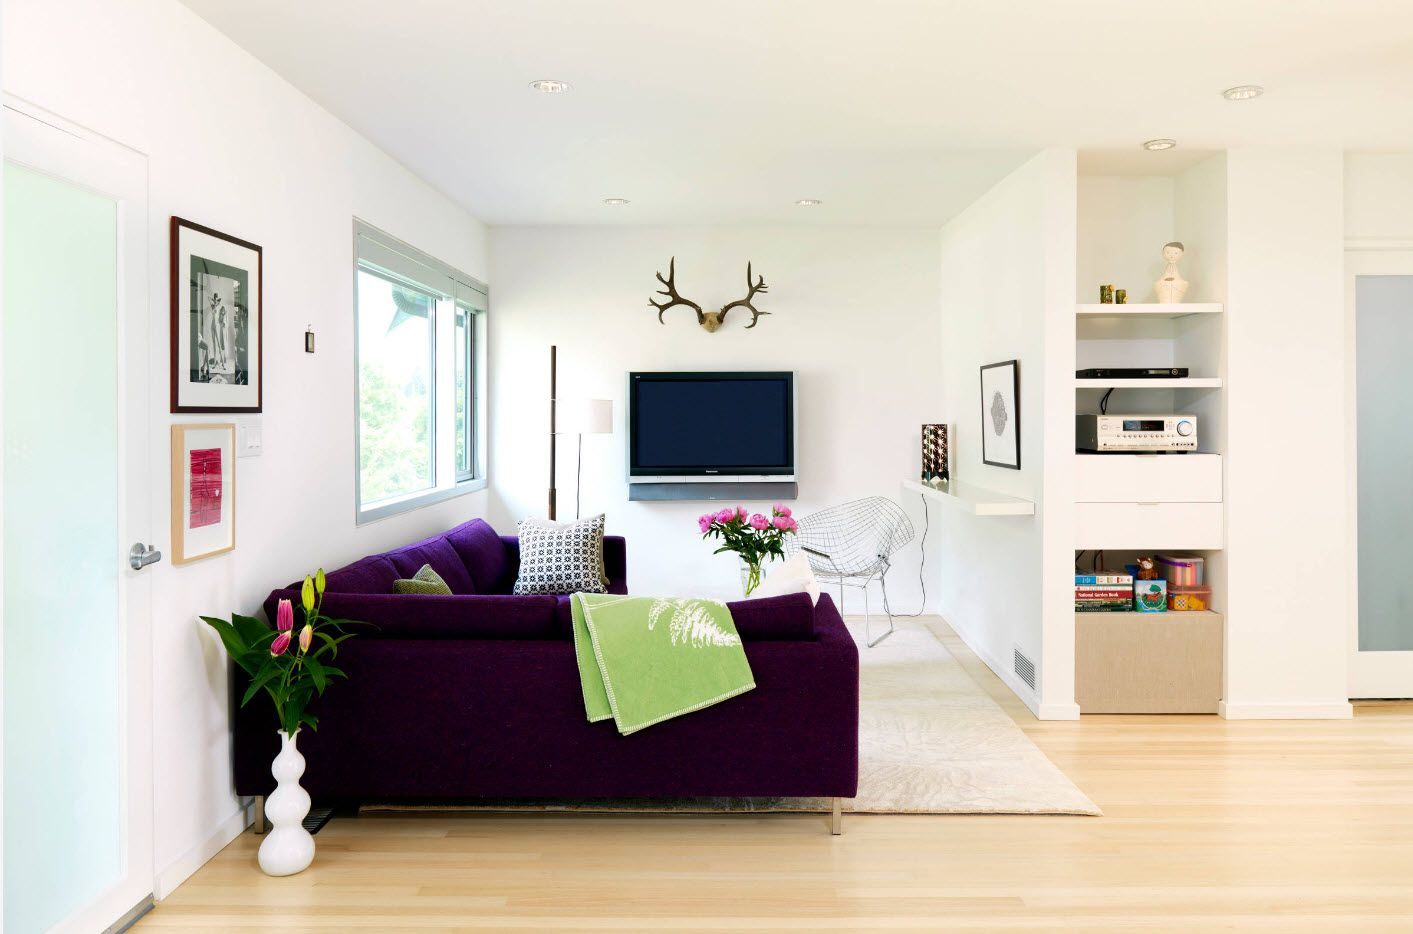 Nice white interior with antlers above the TV-panel